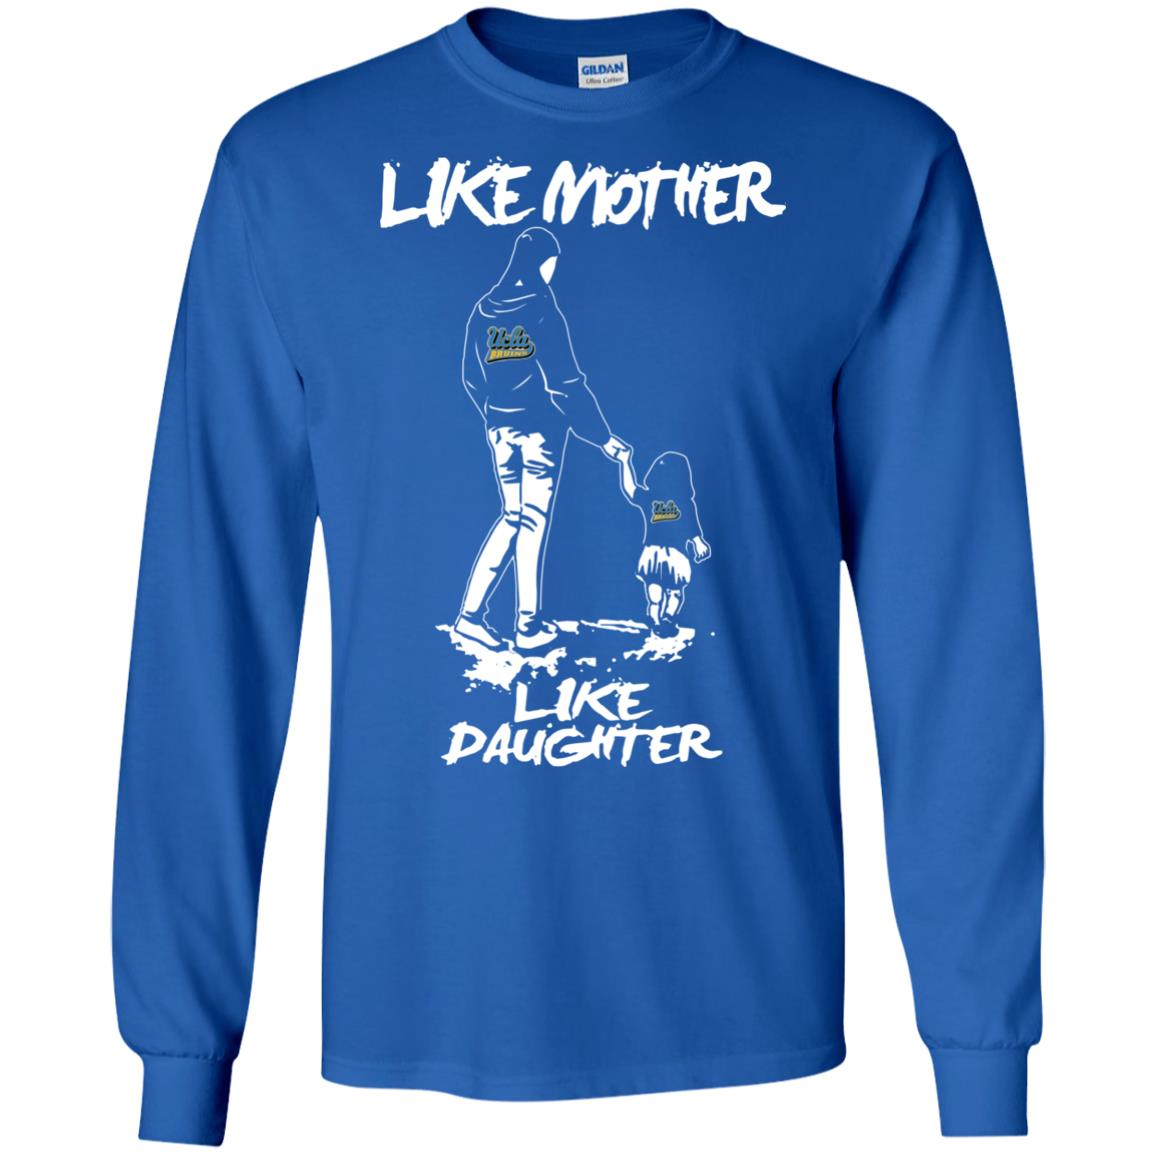 Like Mother Like Daughter UCLA Bruins T Shirts